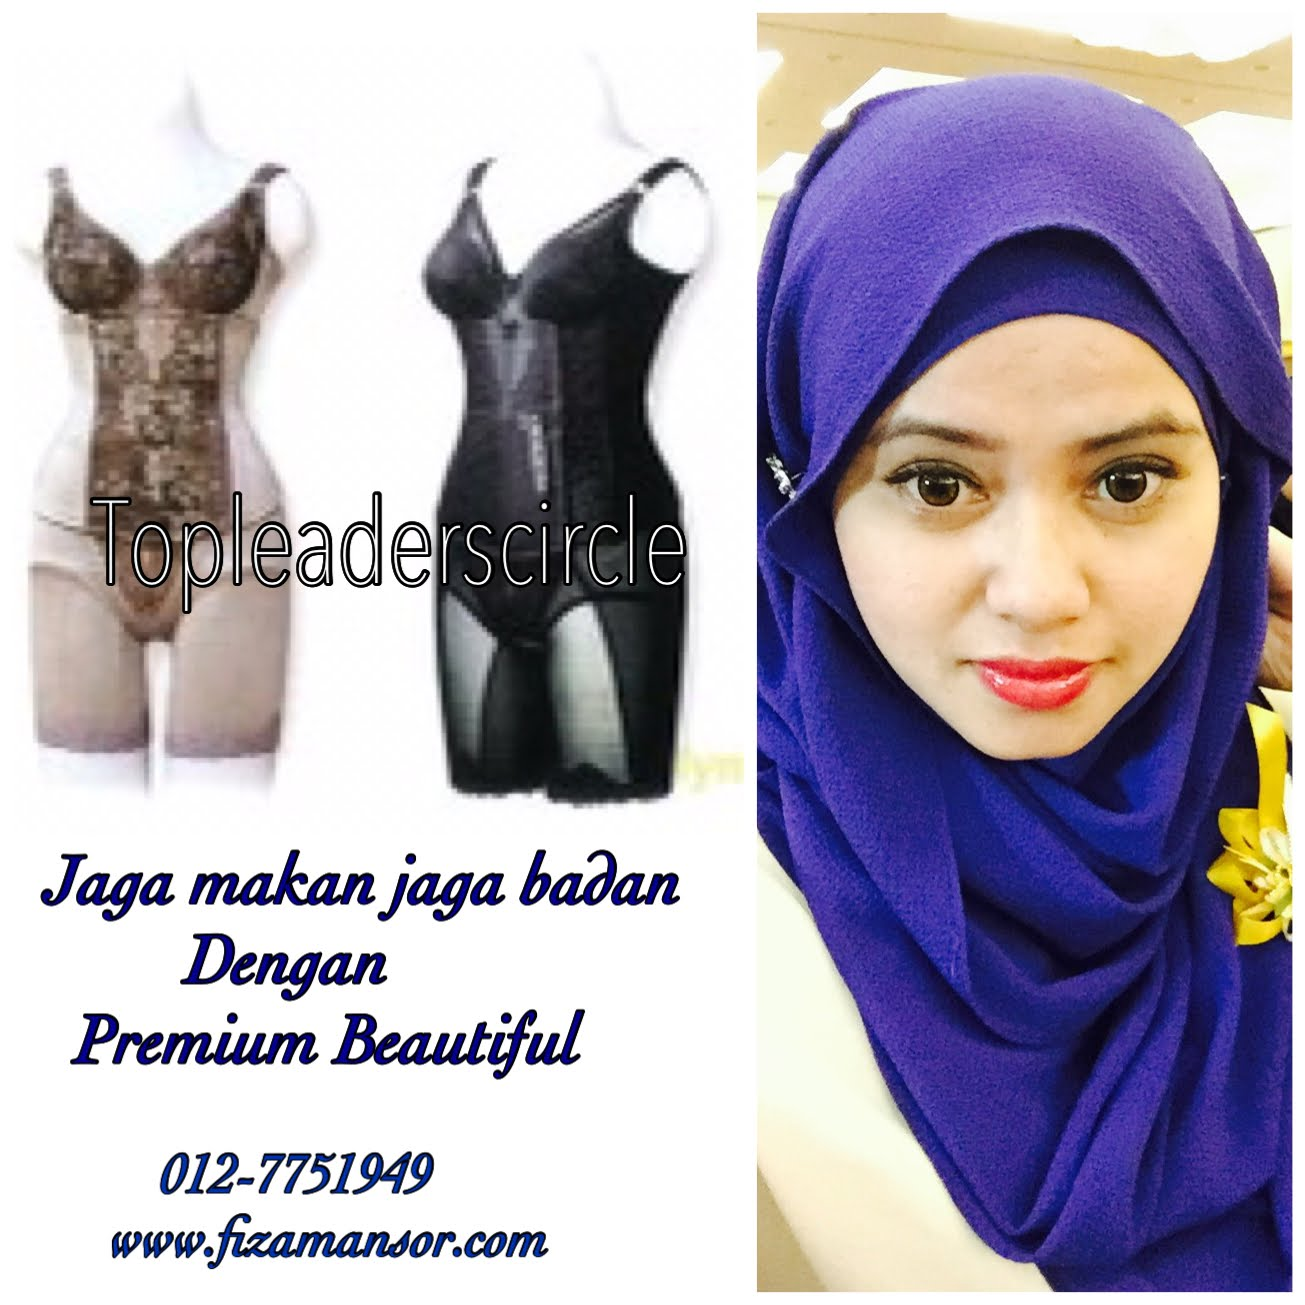 Top Agent Premium Beautiful 2016